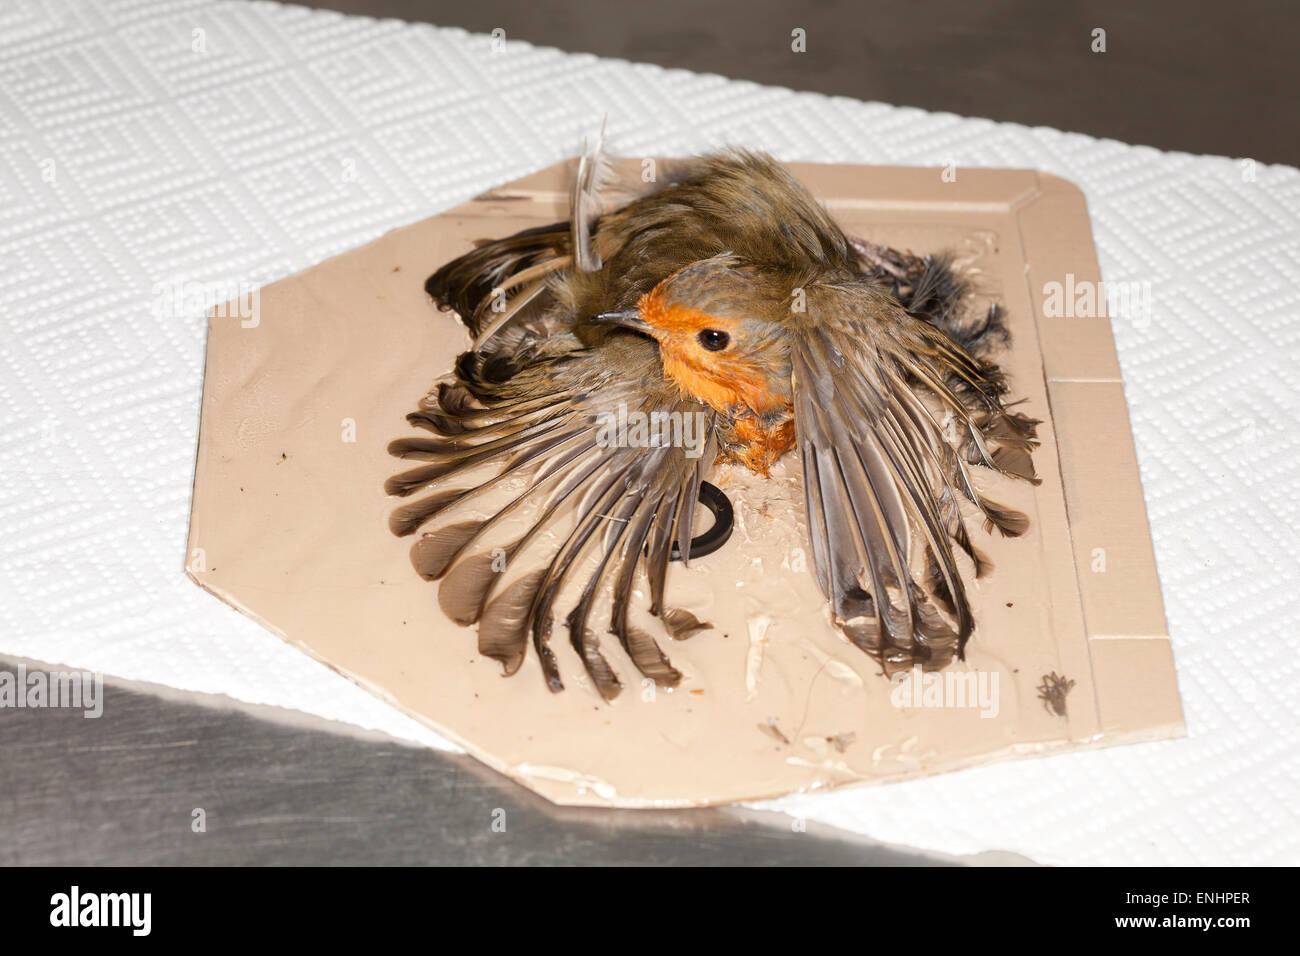 European Robin stuck on fly paper - Stock Image